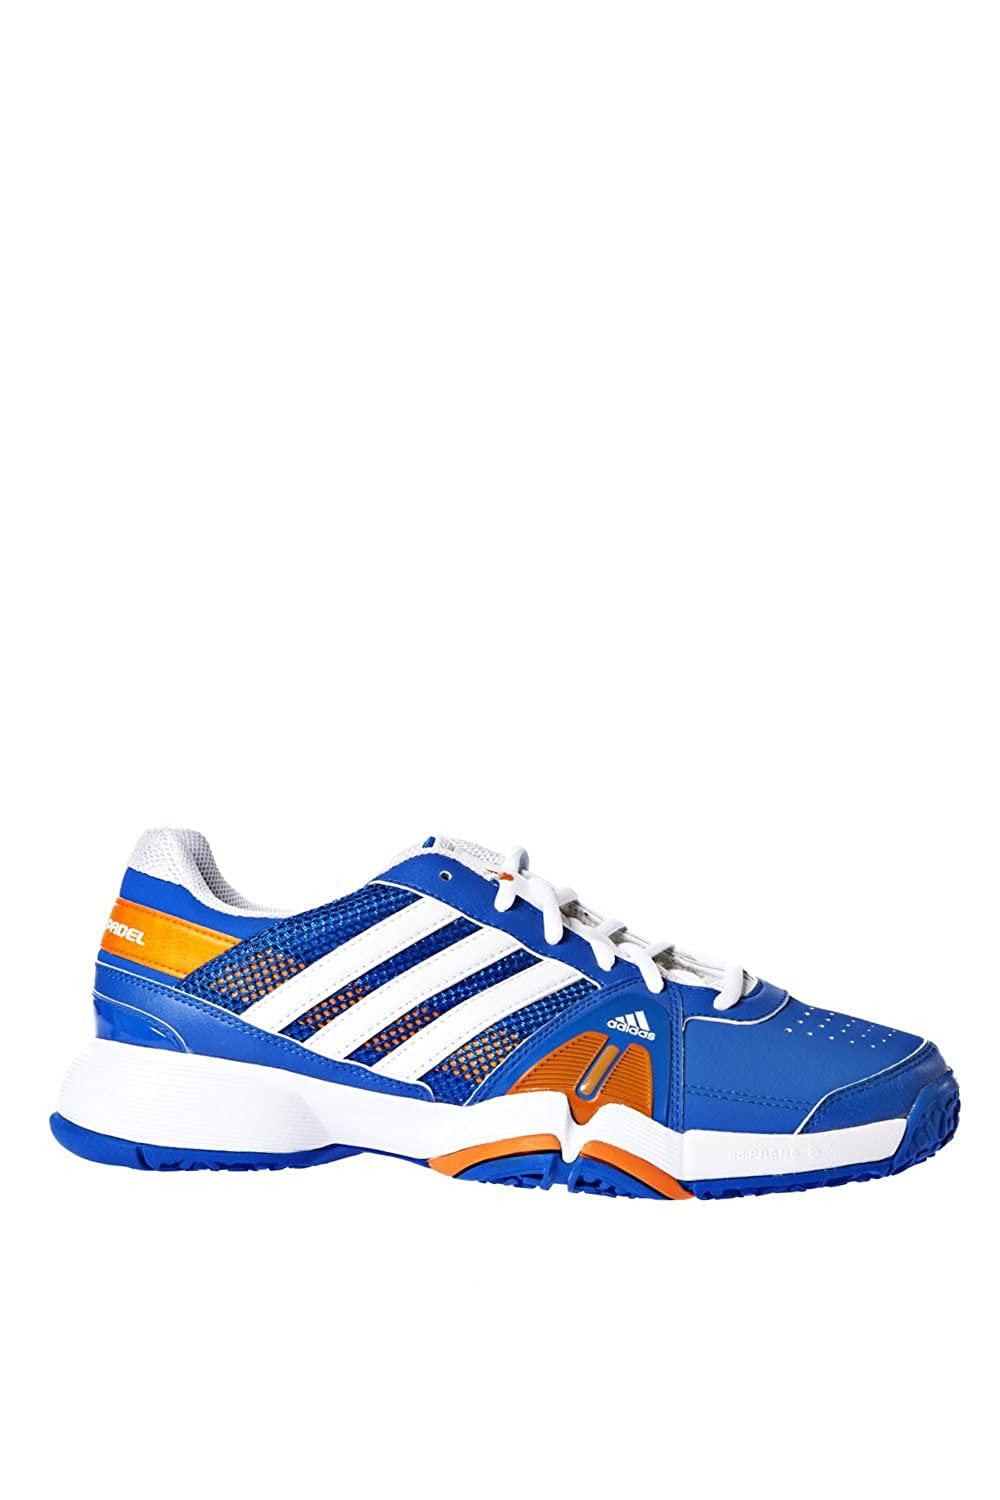 Zapatilla Padel ADIDAS Barricade Team 3 42997 (41.1/3): Amazon.es ...